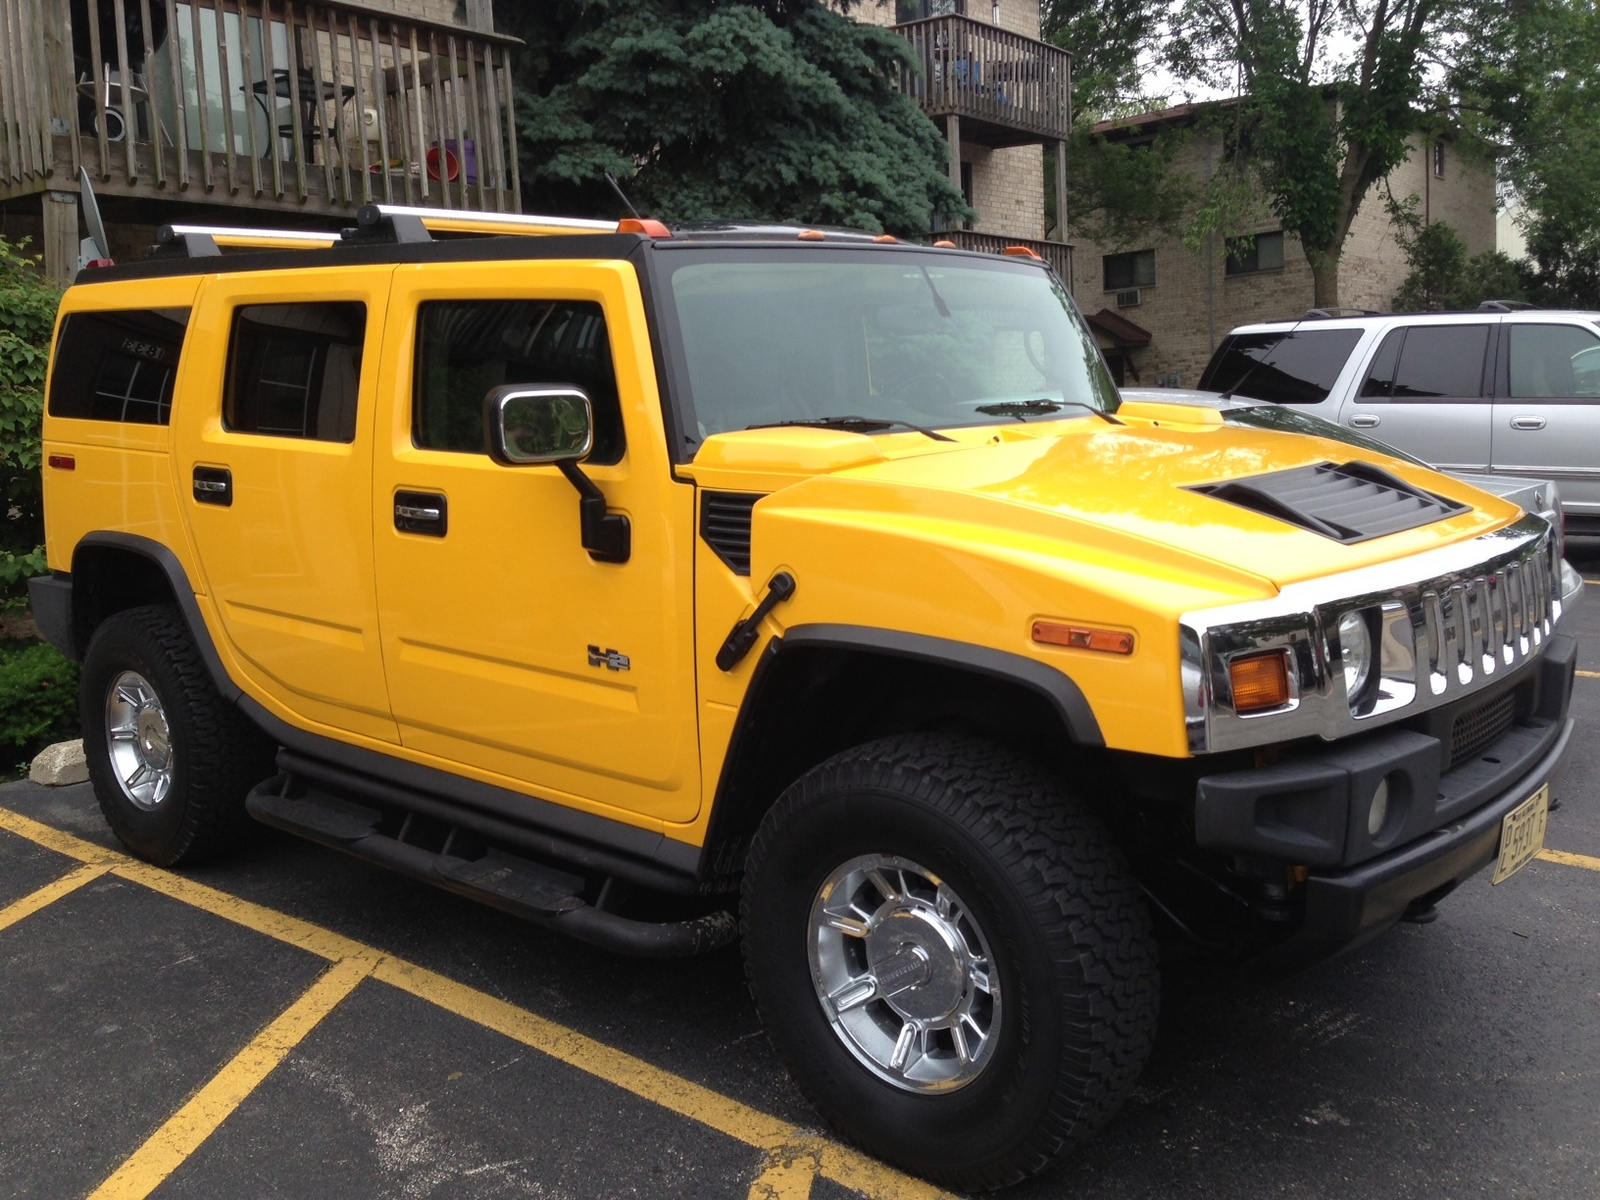 Service manual meter panel remove from a 2003 hummer h2 - 2003 hummer h2 interior door panel ...